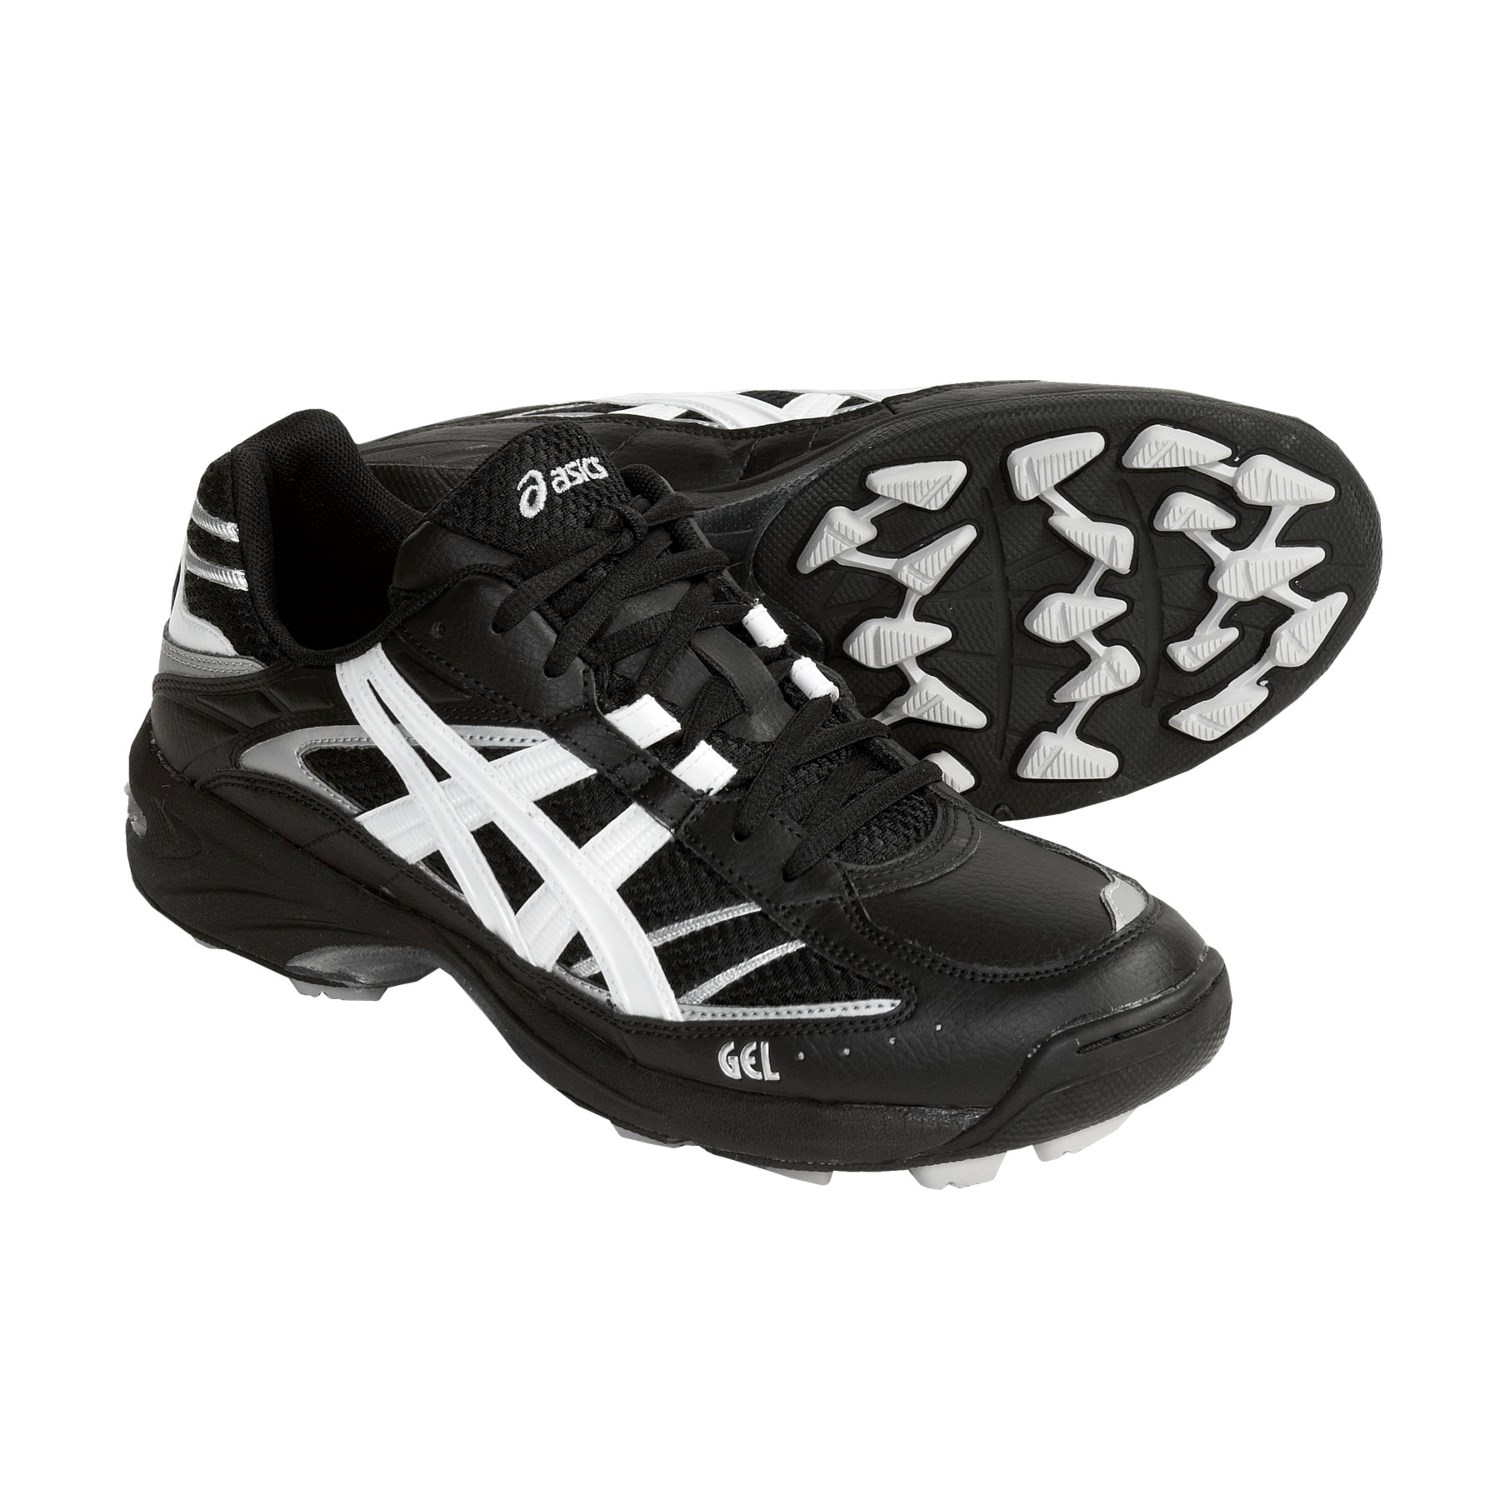 GEL-Blackheath Field Sport Shoes (For Women) in Black/White/Silver